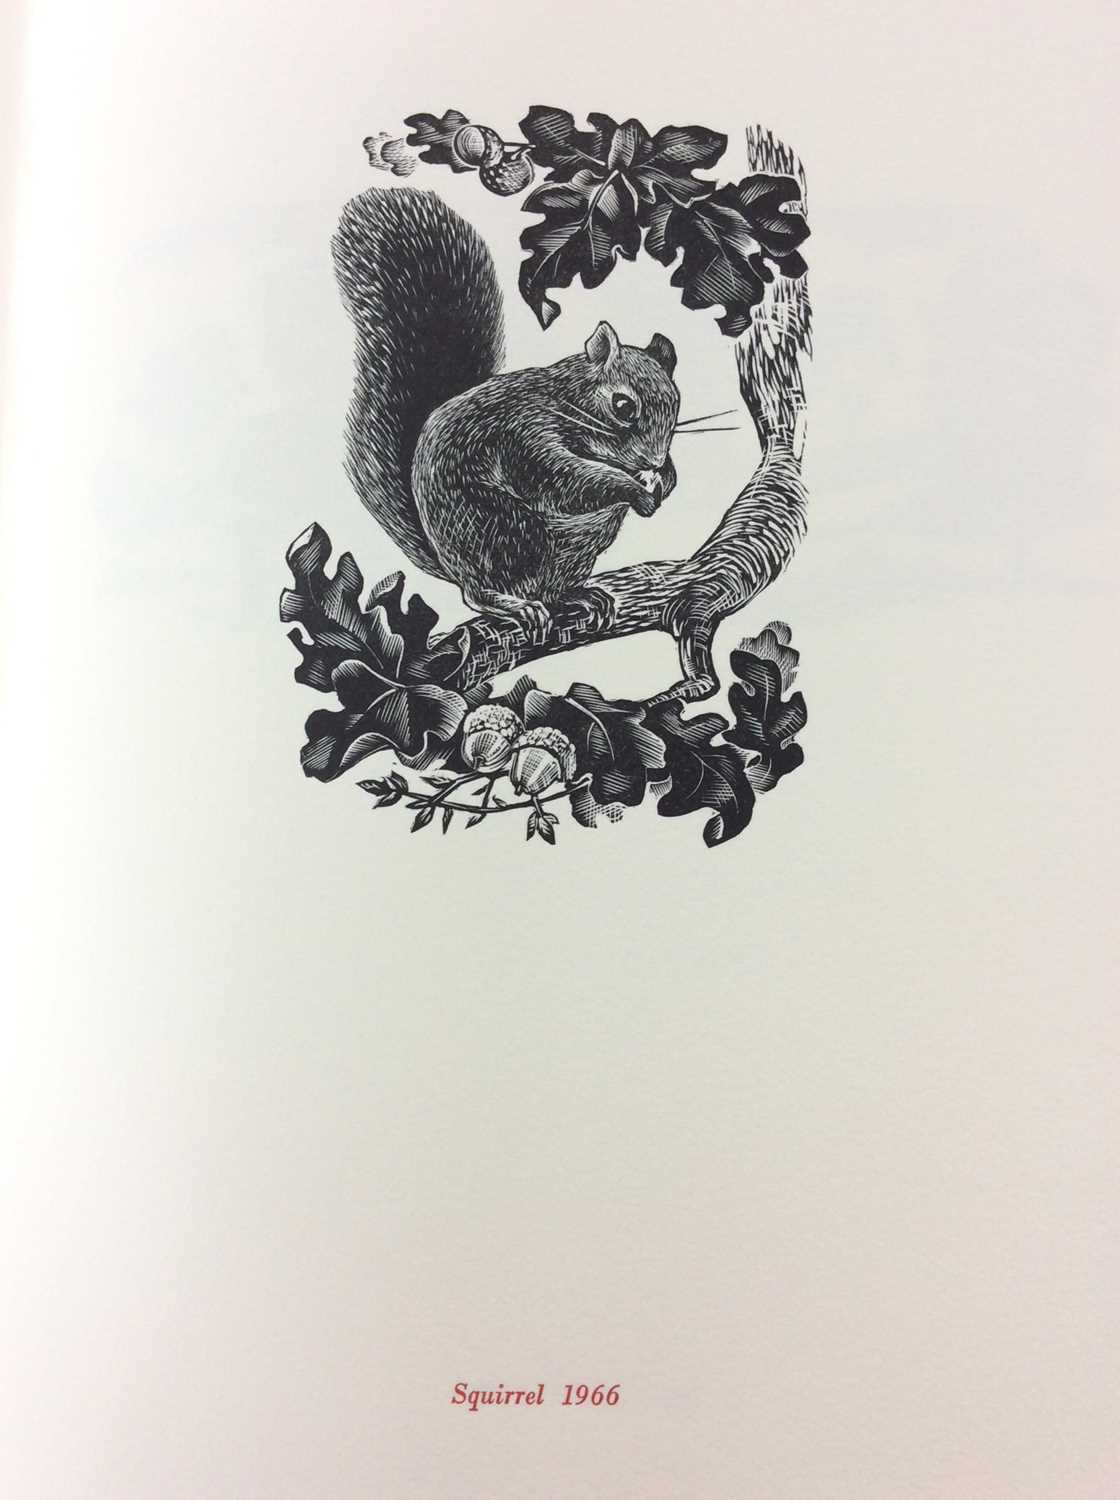 Mary Skempton - The Wood Engravings of Mary Skempton limited edition of 150 - Image 6 of 7